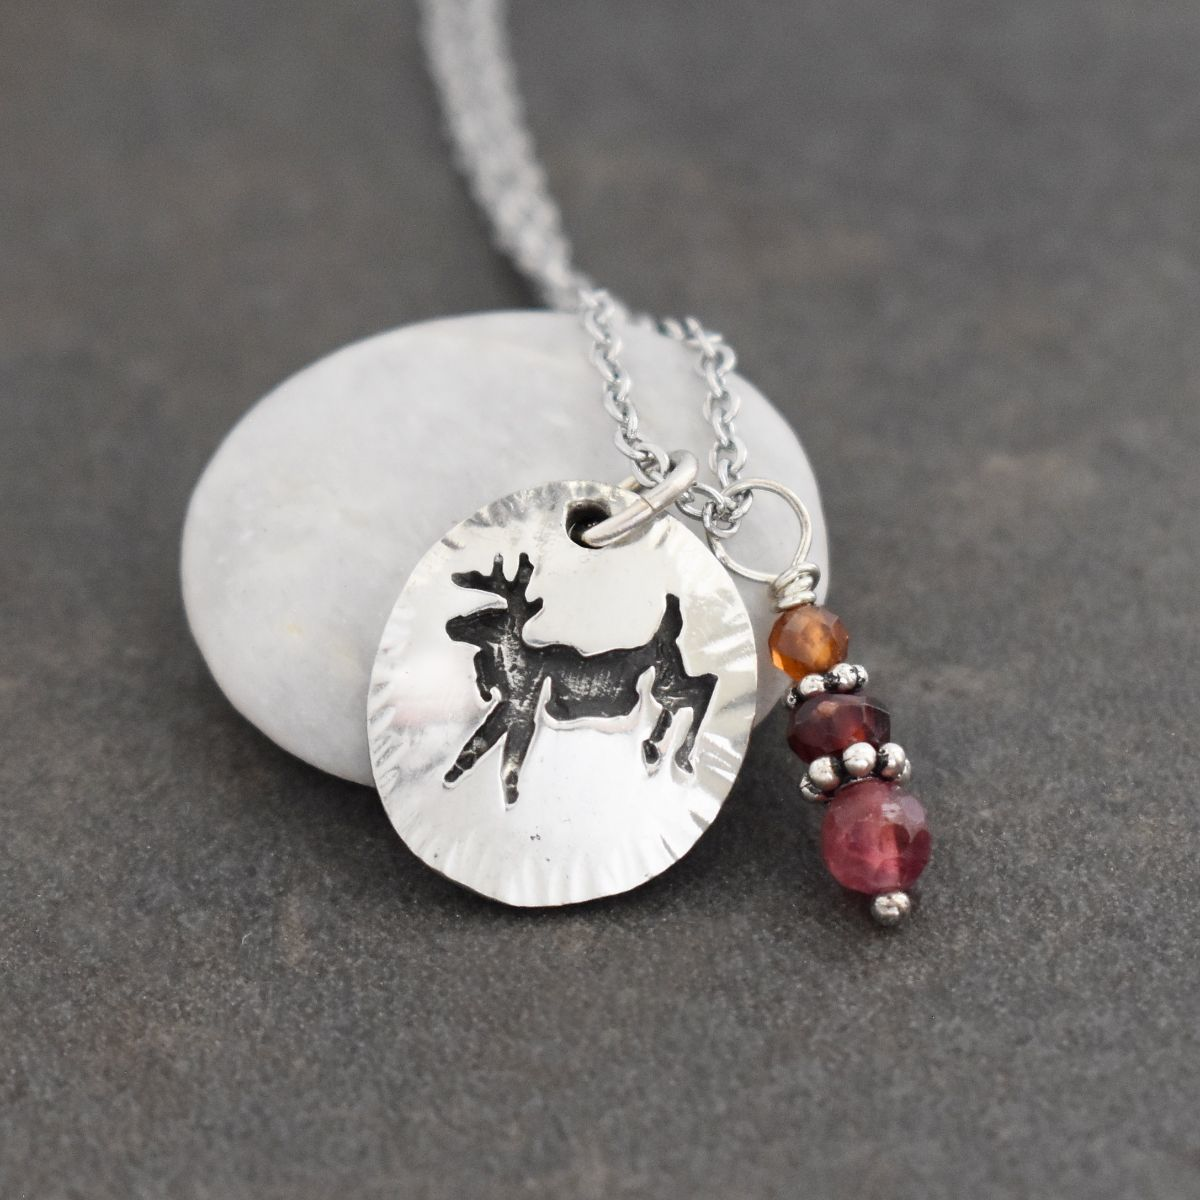 Jumping deer necklace